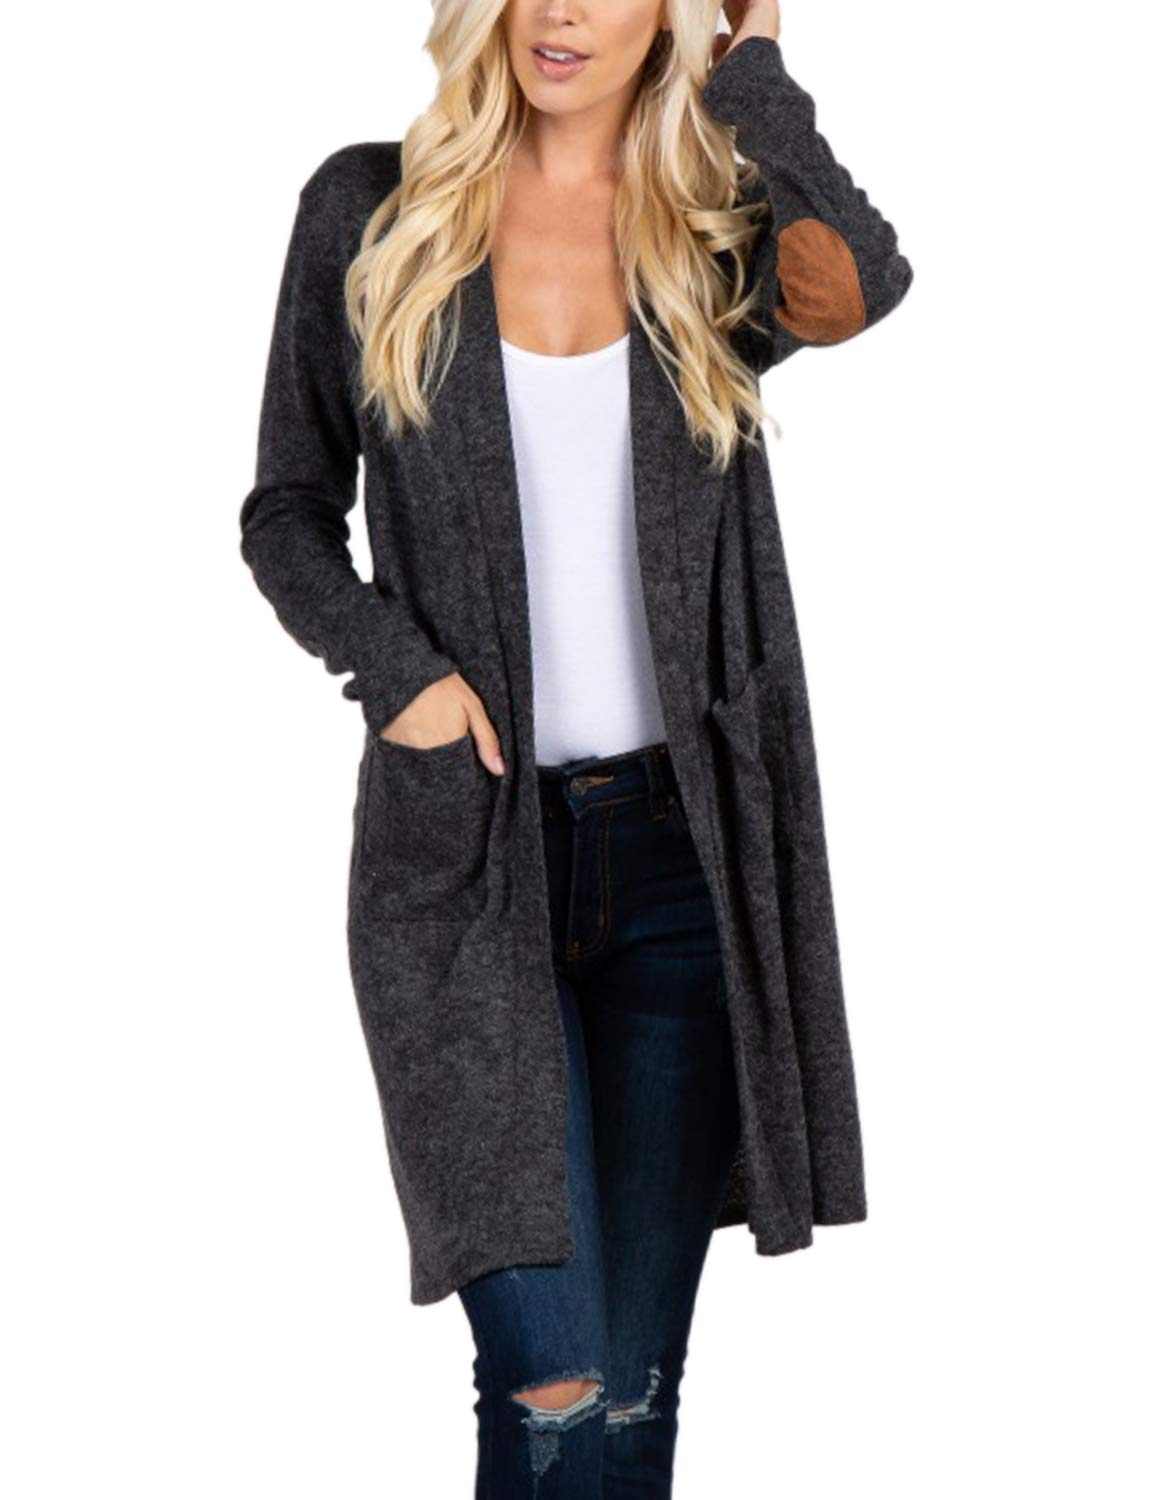 Super soft cardigan sweater